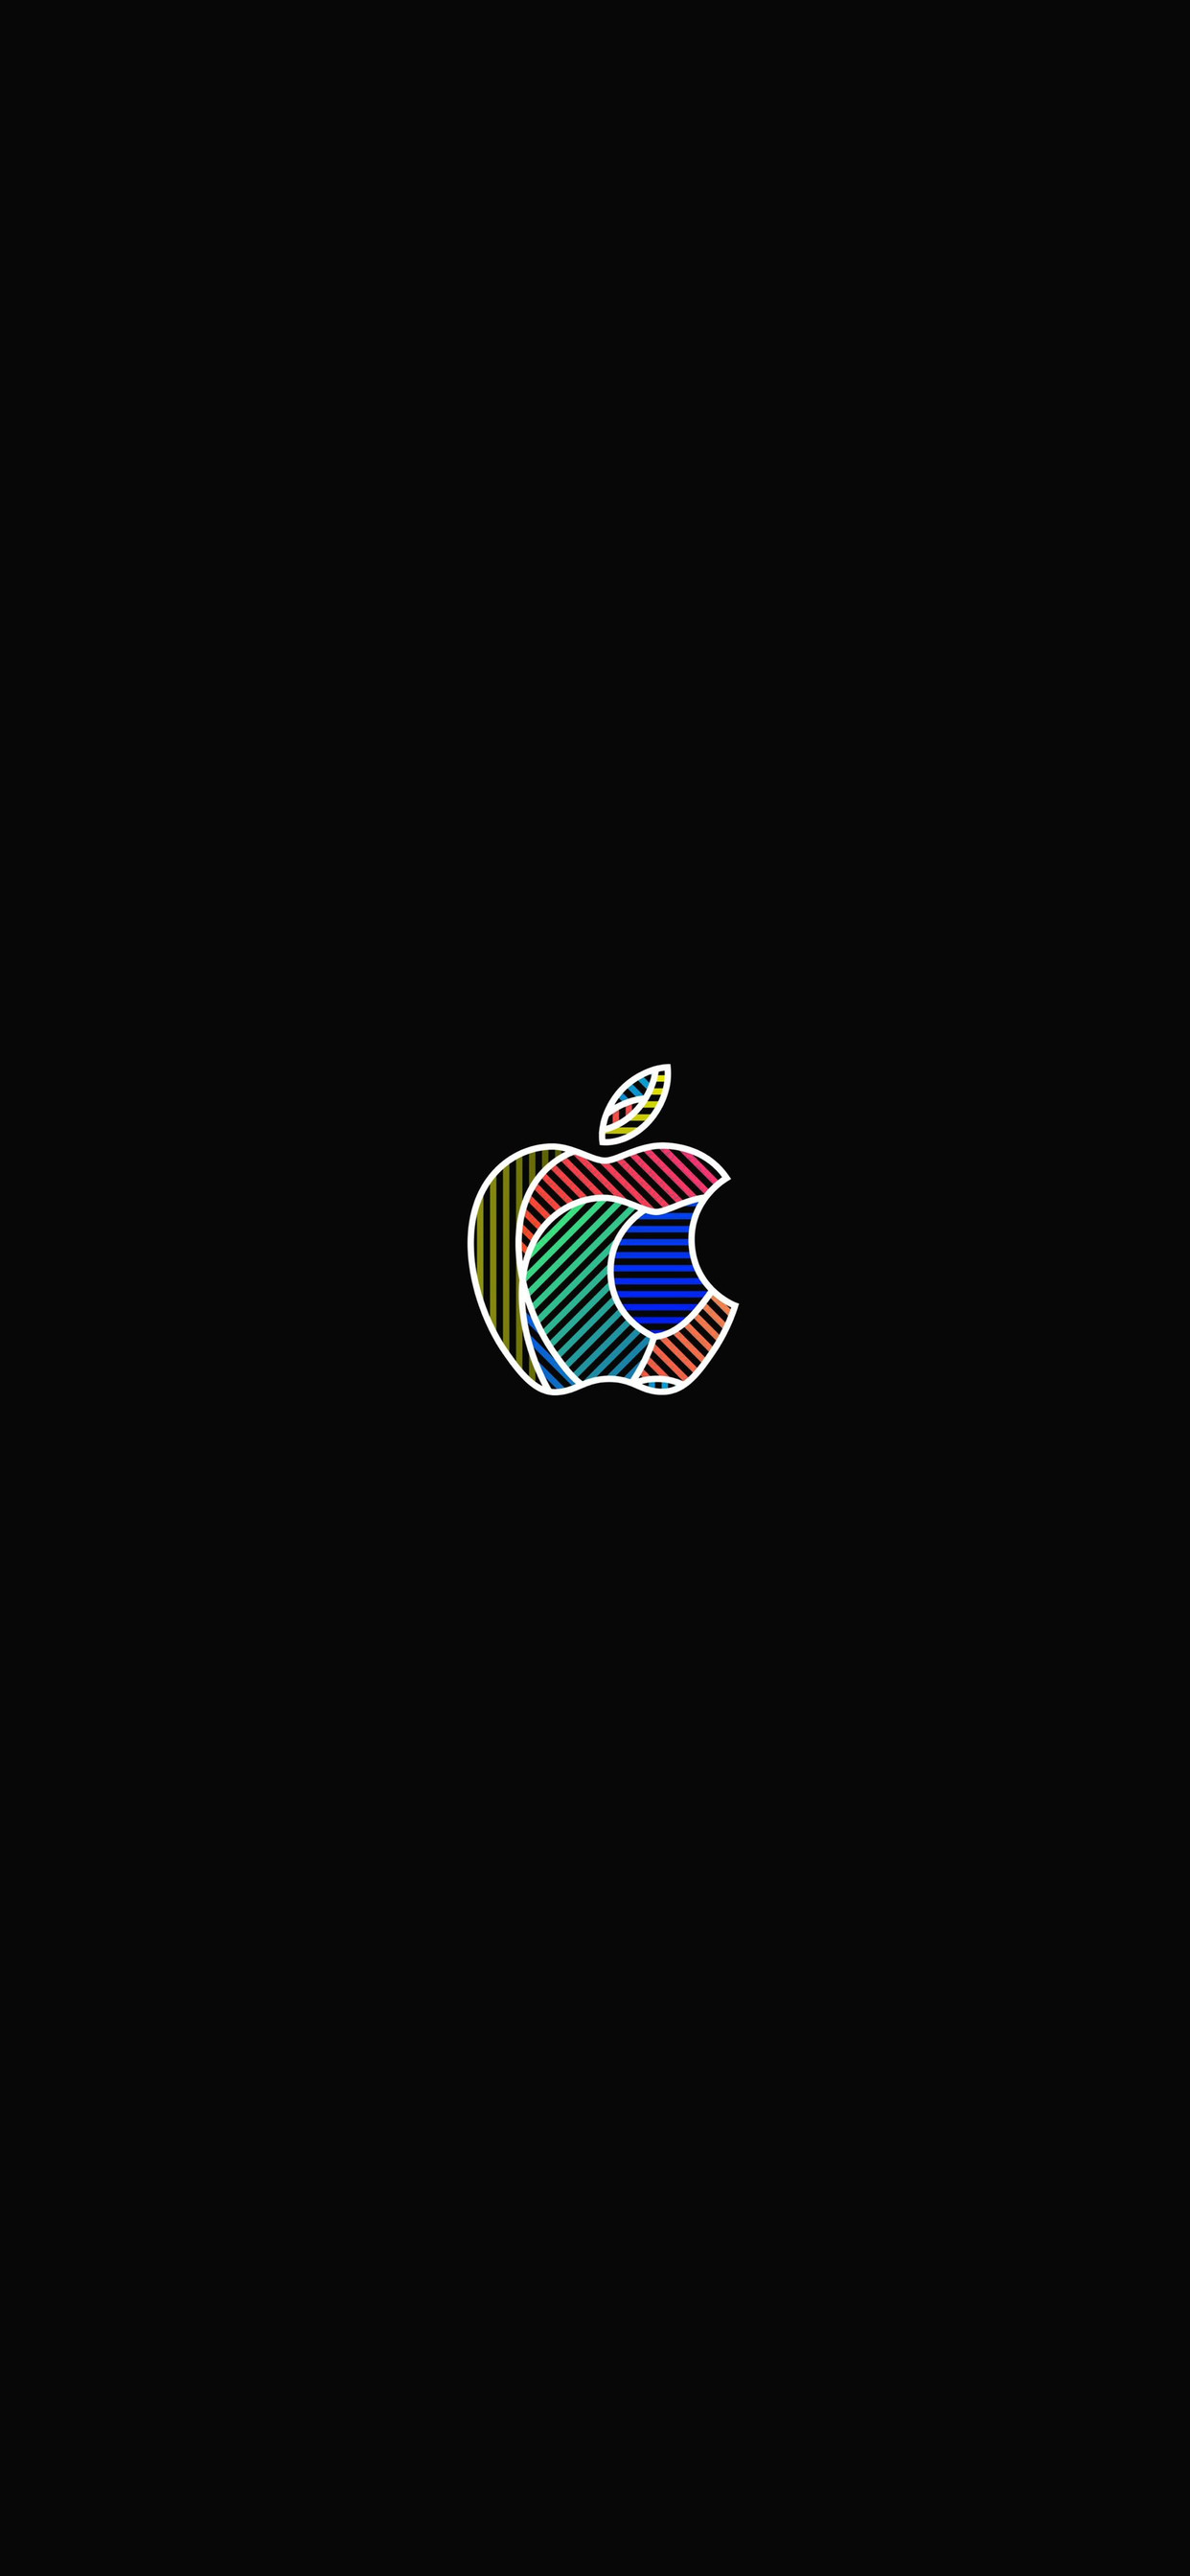 iPhone wallpaper apple logo 26 Apple logo